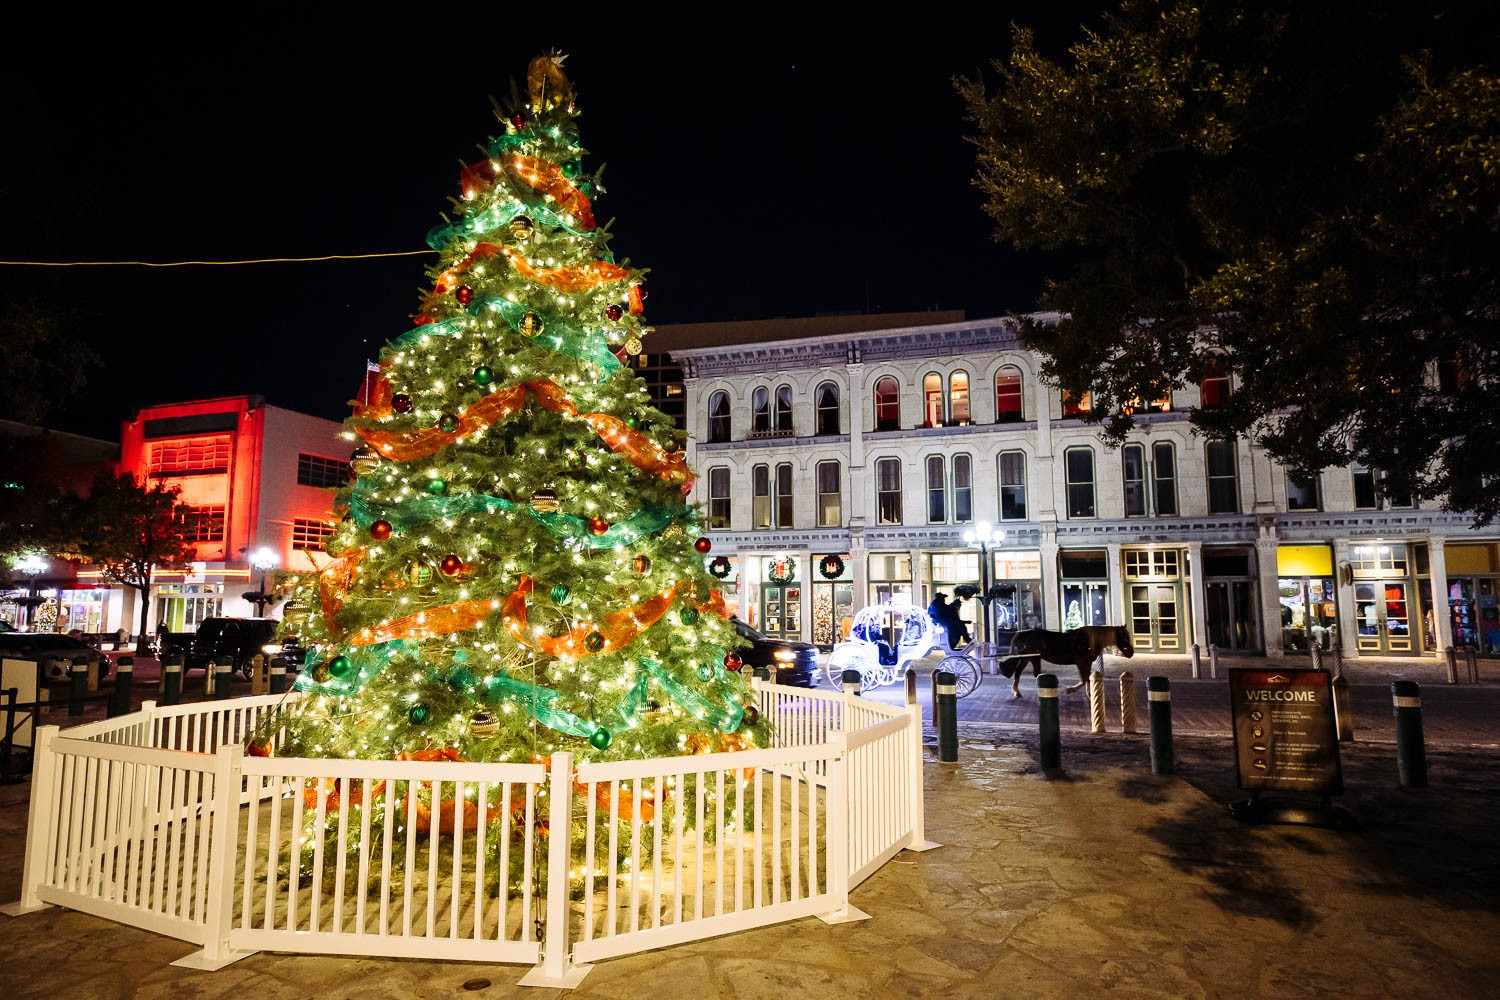 A Christmas tree stands at Alamo Plaza on Dec. 1, 2020. <b><em>Photo by Chris Stokes | Heron contributor</em></b>